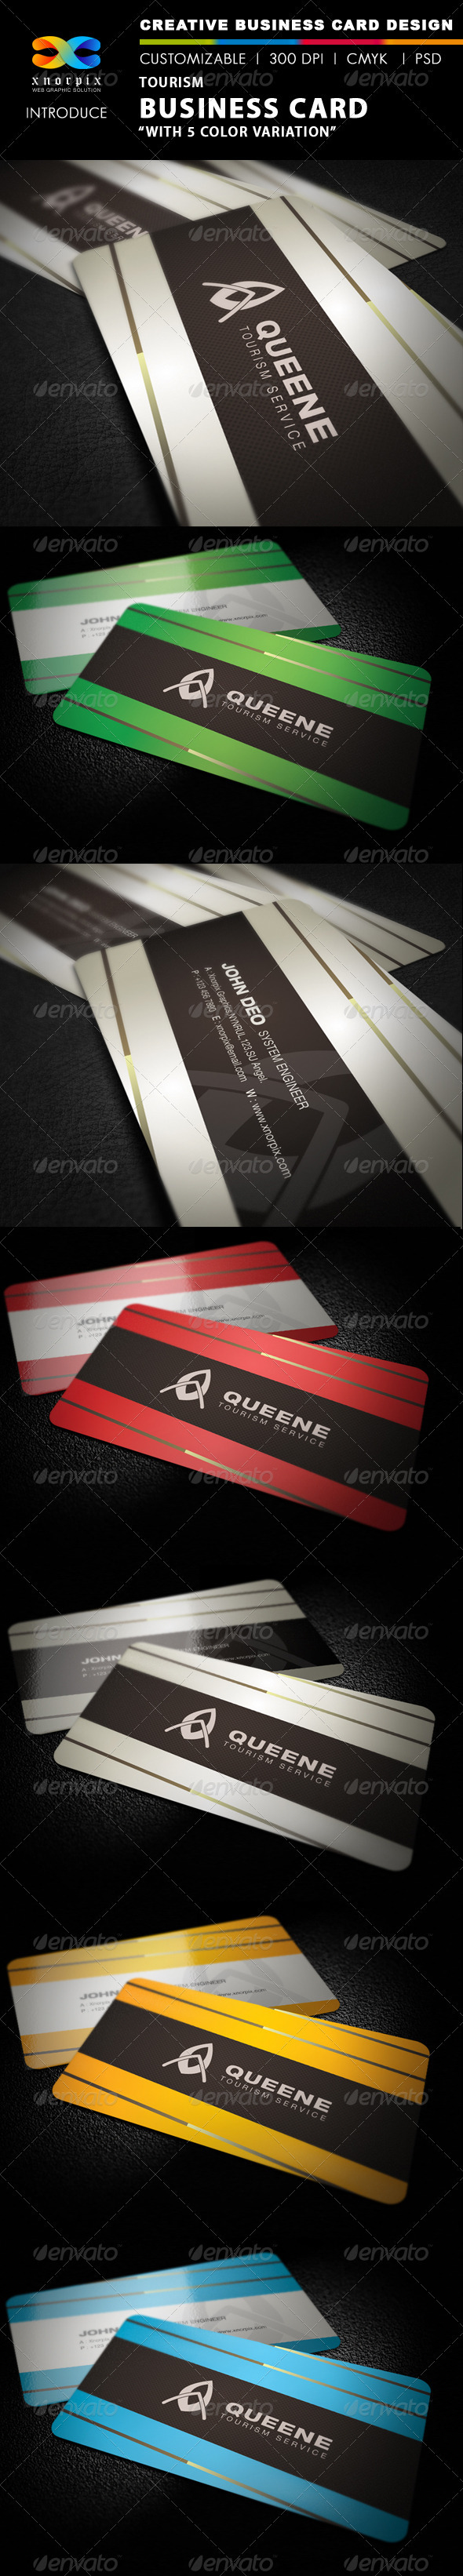 Tourism Business Card - Corporate Business Cards